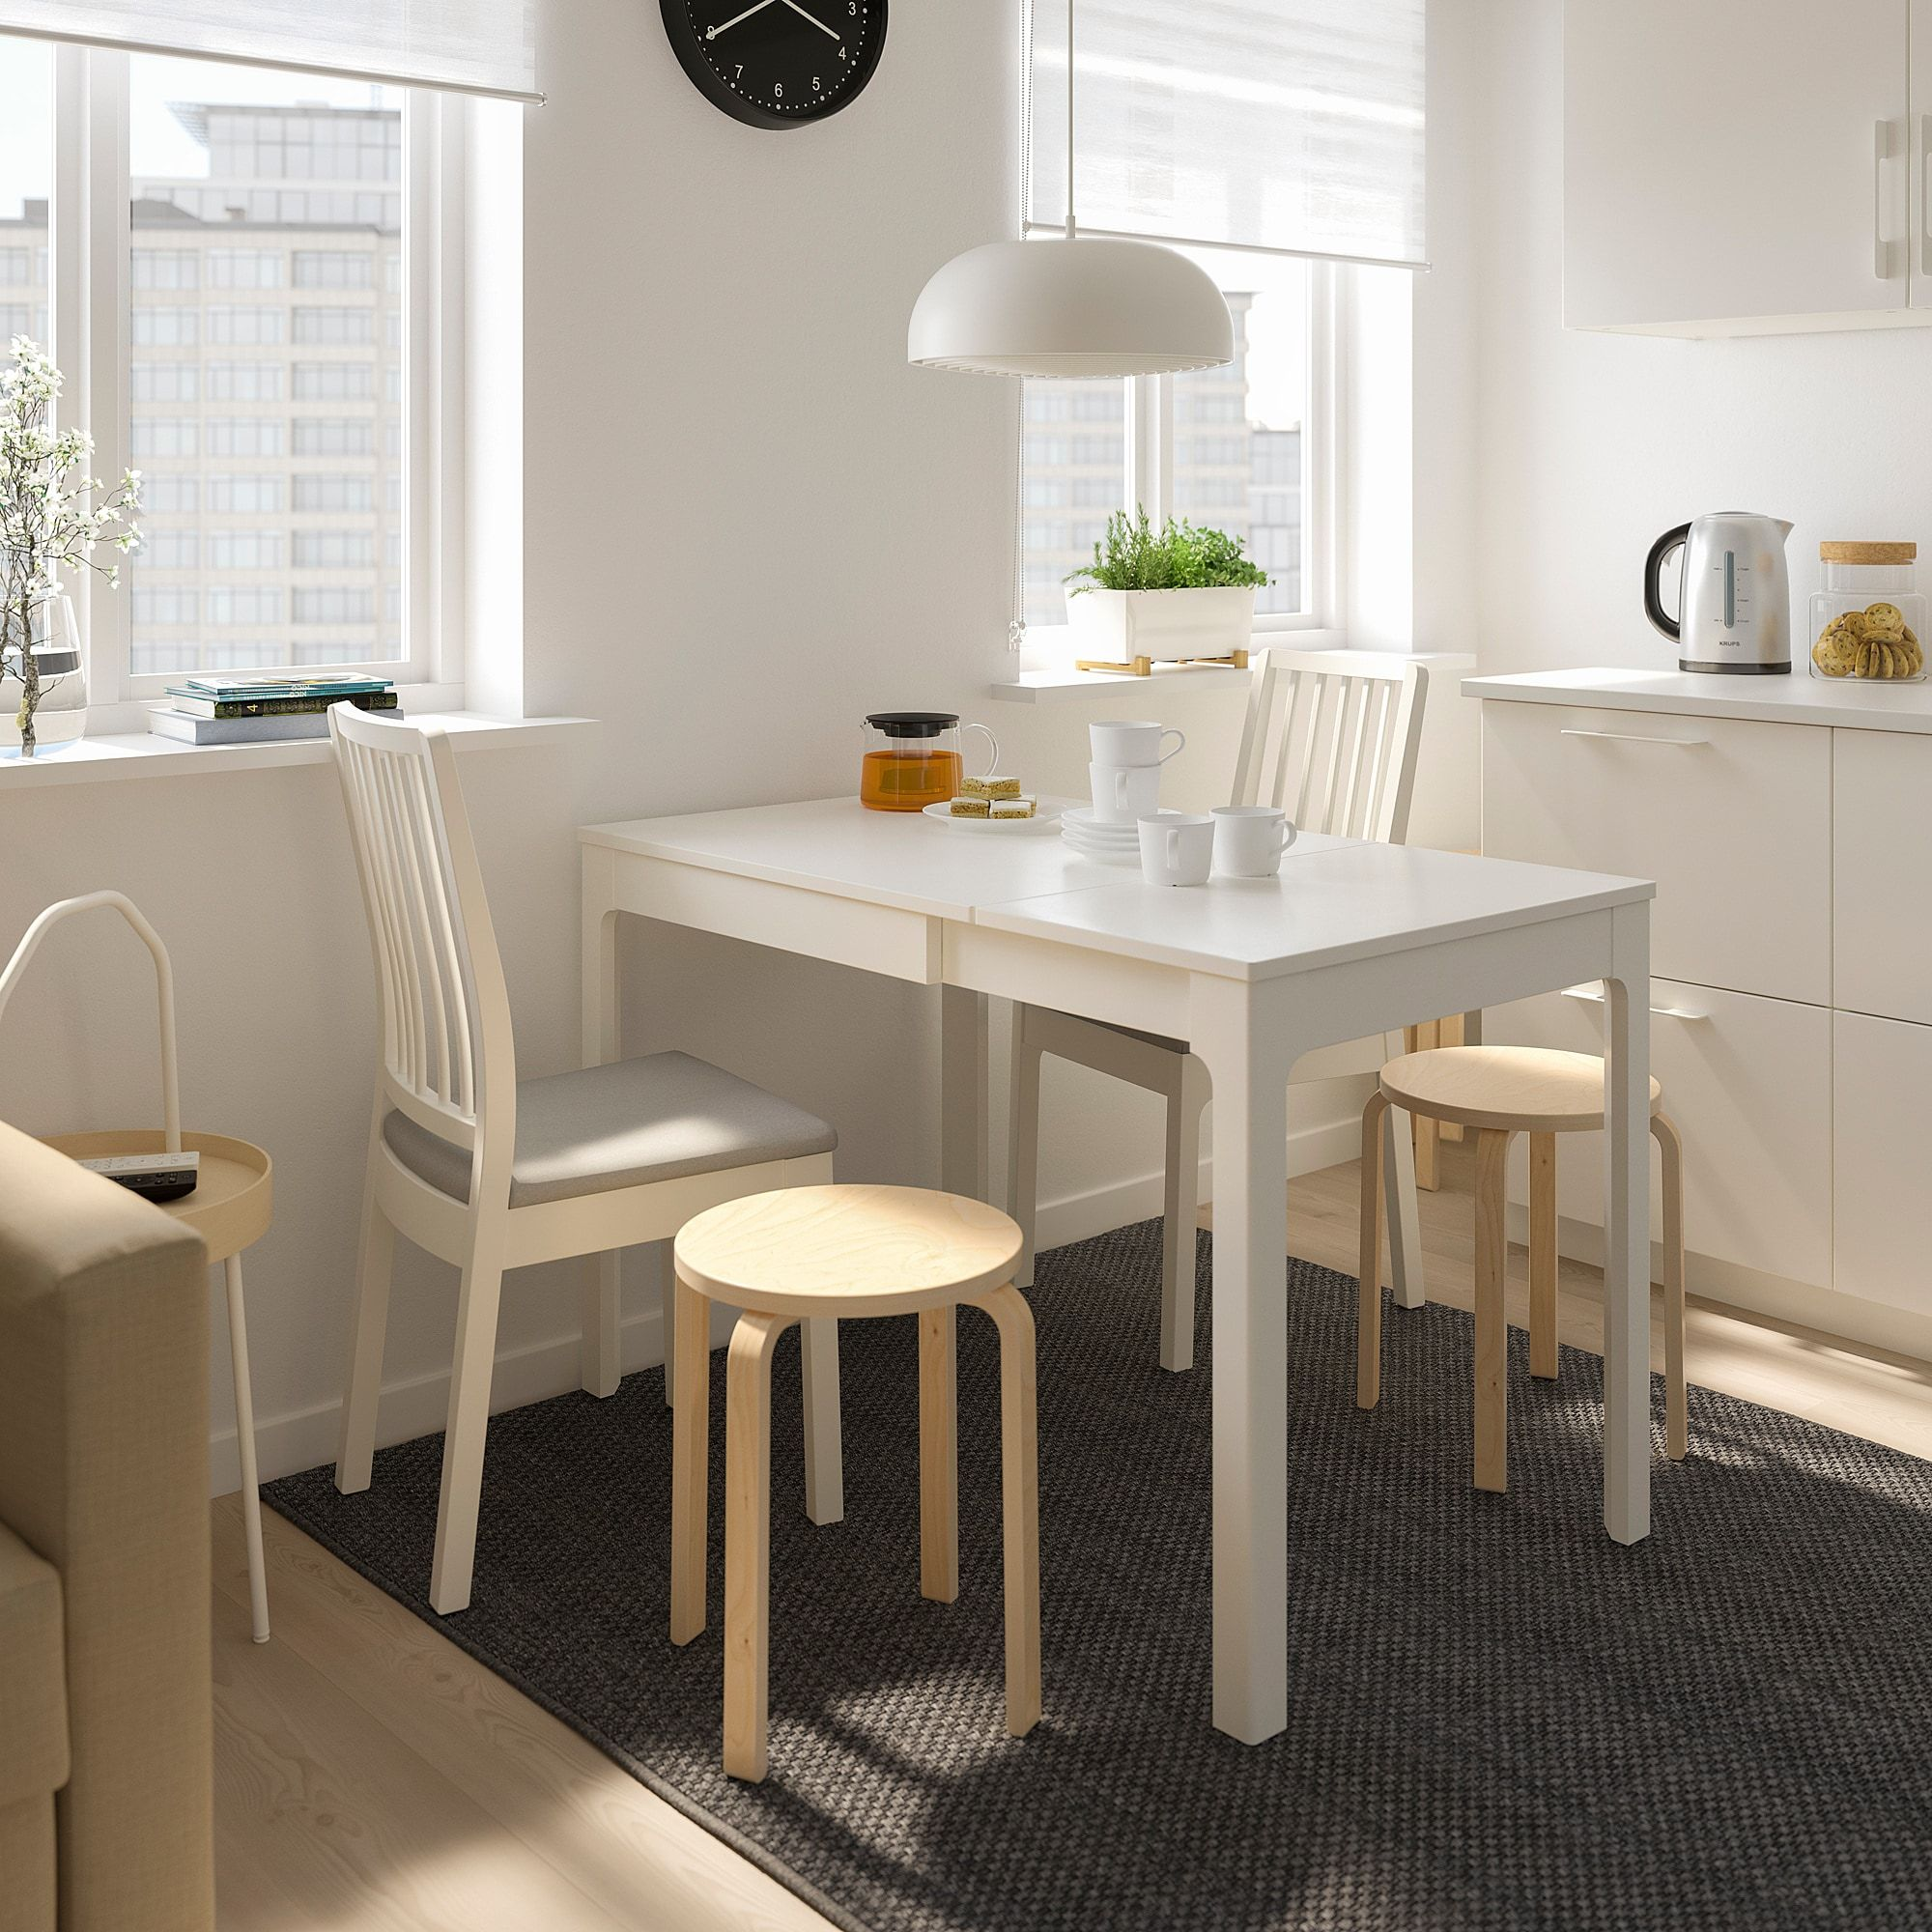 10 Best Ikea Kitchen Tables And Dining